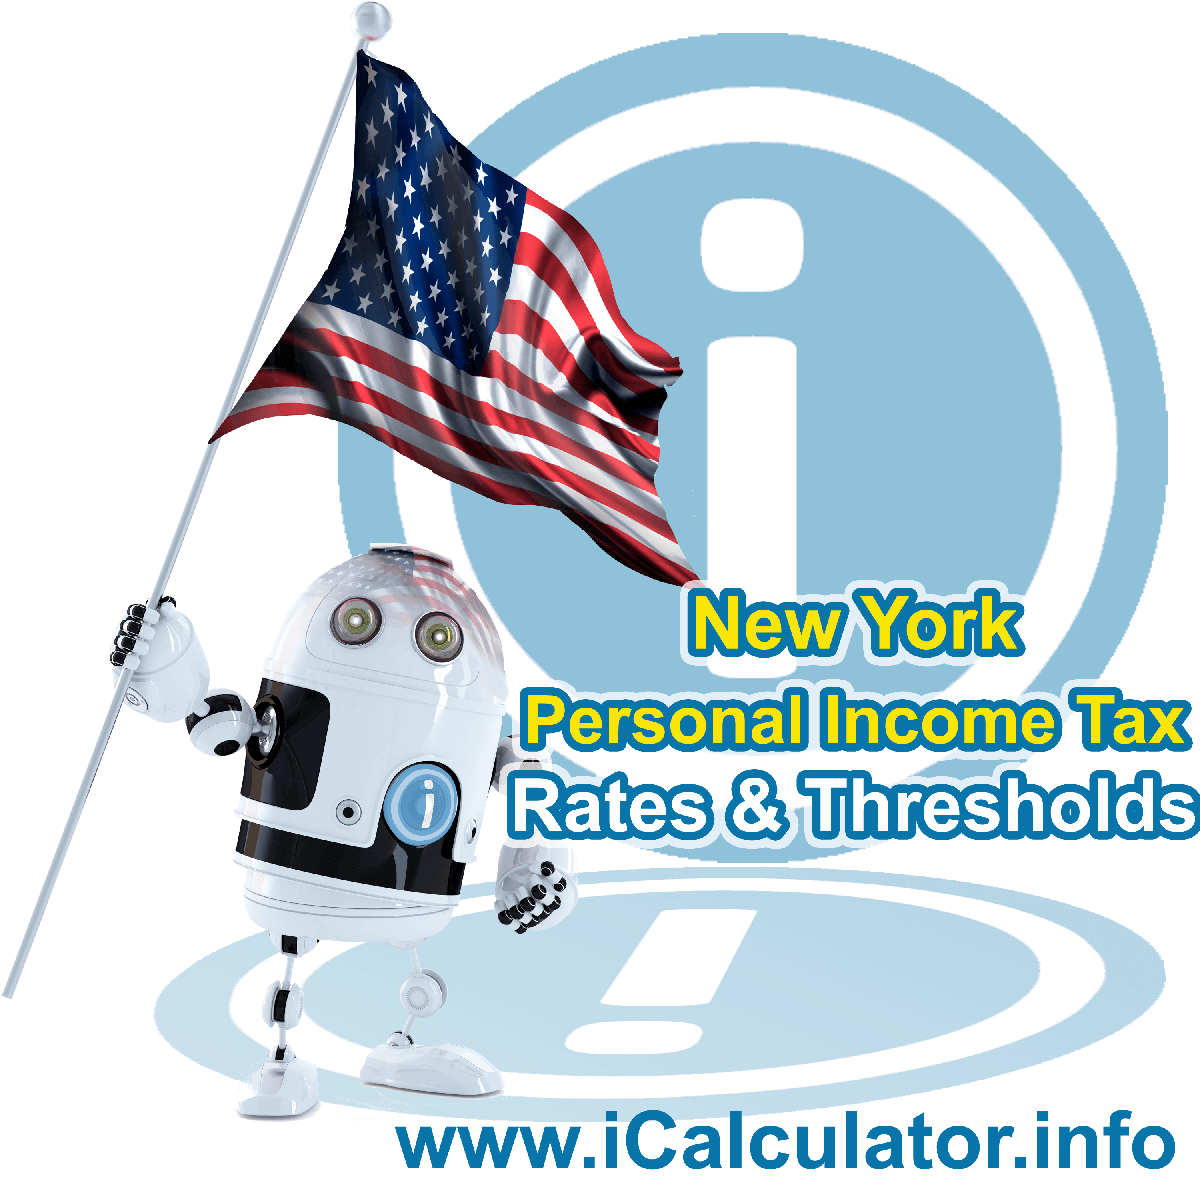 New York State Tax Tables 2020. This image displays details of the New York State Tax Tables for the 2020 tax return year which is provided in support of the 2020 US Tax Calculator